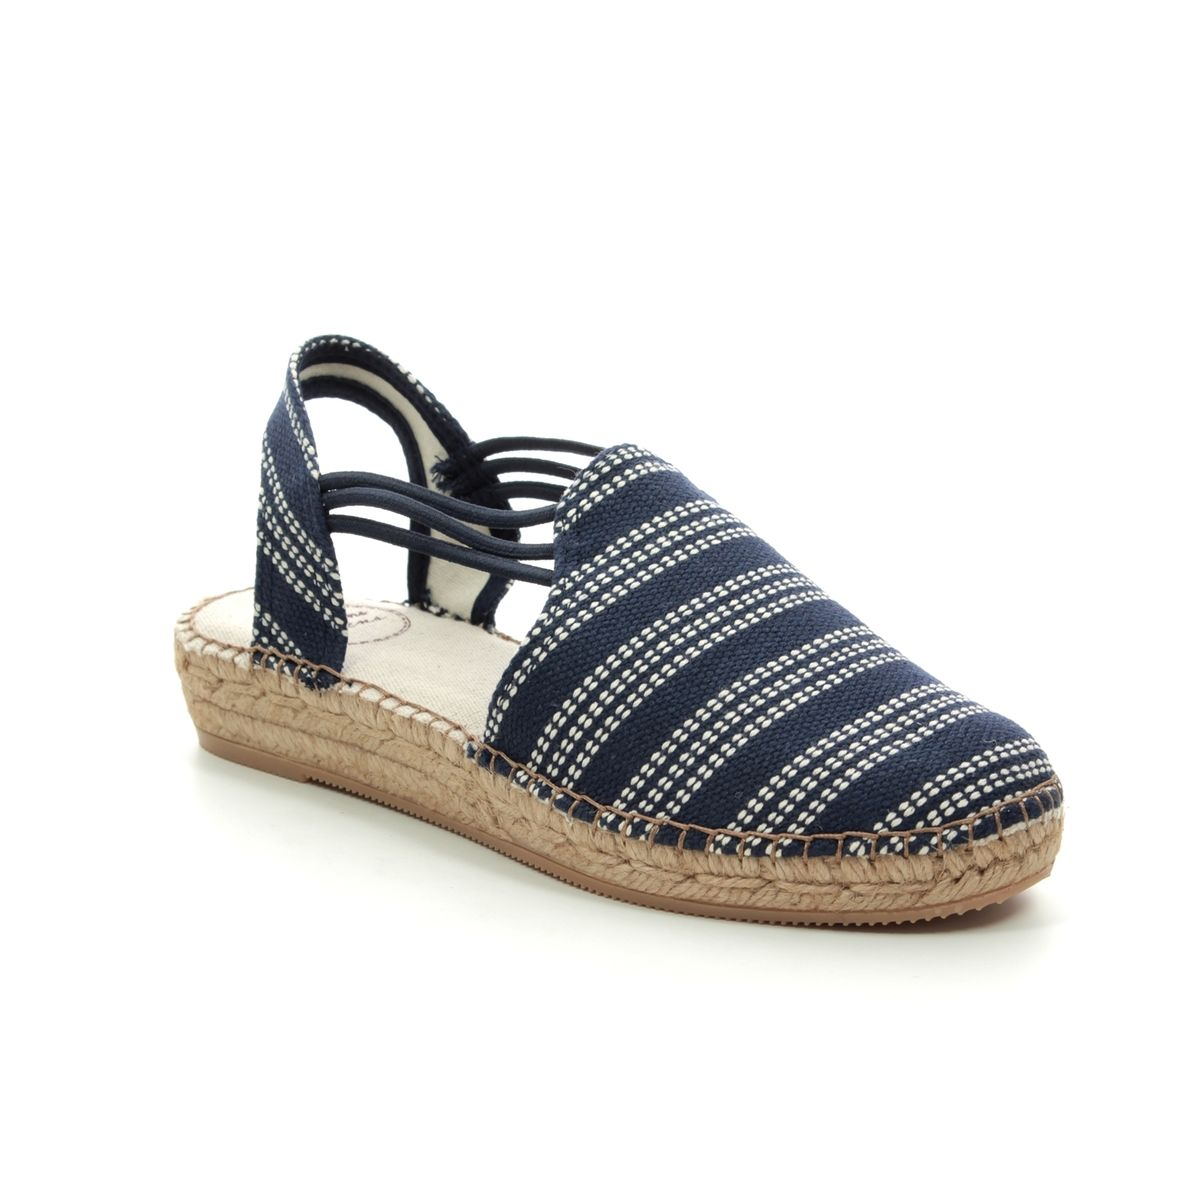 24f02944724 9103/70 Norma at Begg Shoes & Bags